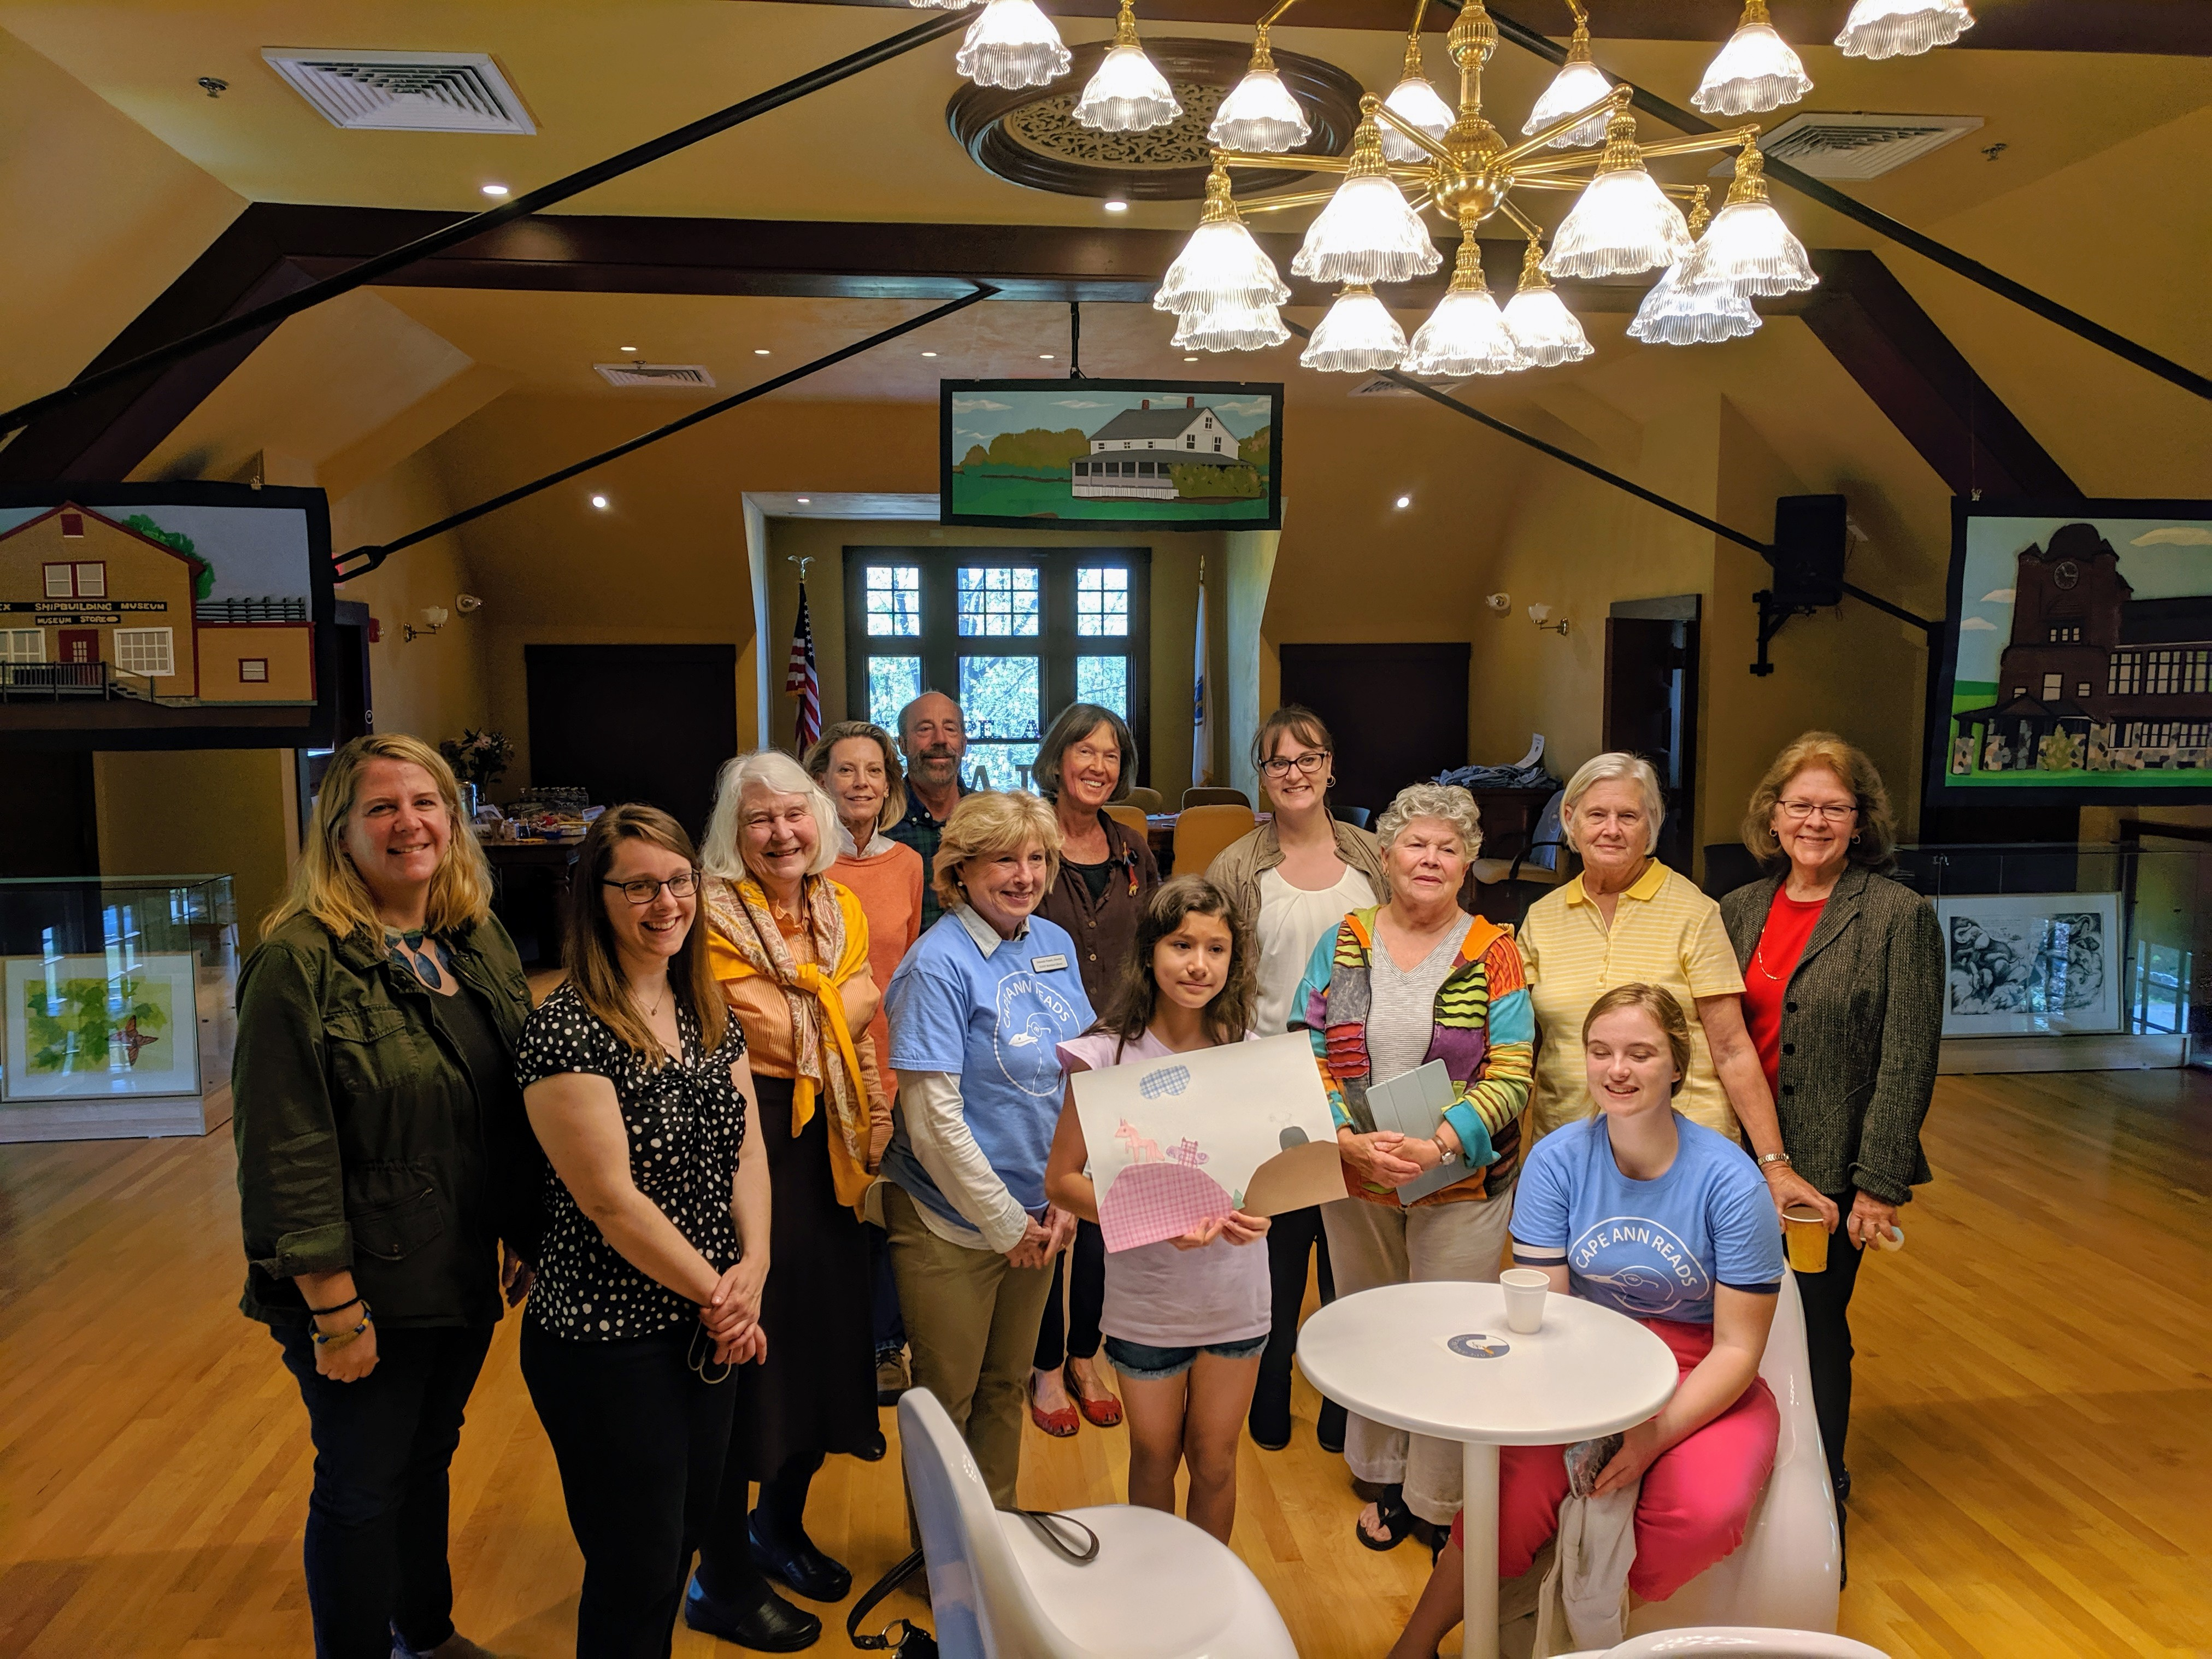 Reception at TOHP Burnham Library Essex Mass._ artists and writers of Once Upon a Contest Selections from Cape Ann Reads exhibition _20190518_about 60 guests all ages stopped by © c ryan (10).jpg